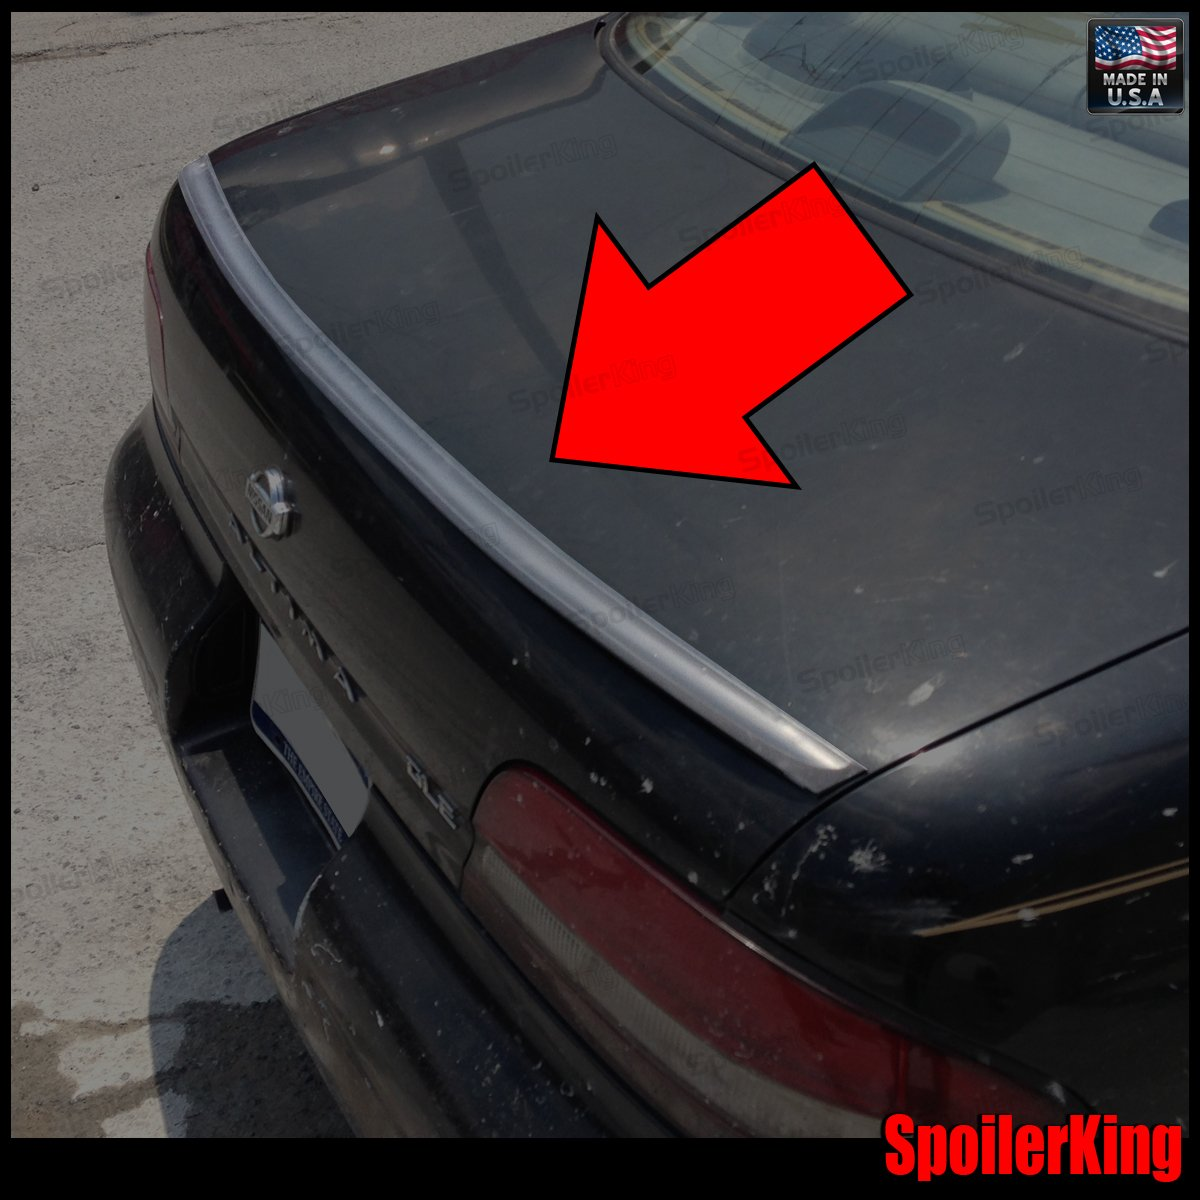 Spoiler King Trunk Lip Spoiler (244L) Compatible with Nissan Altima 1993-1997